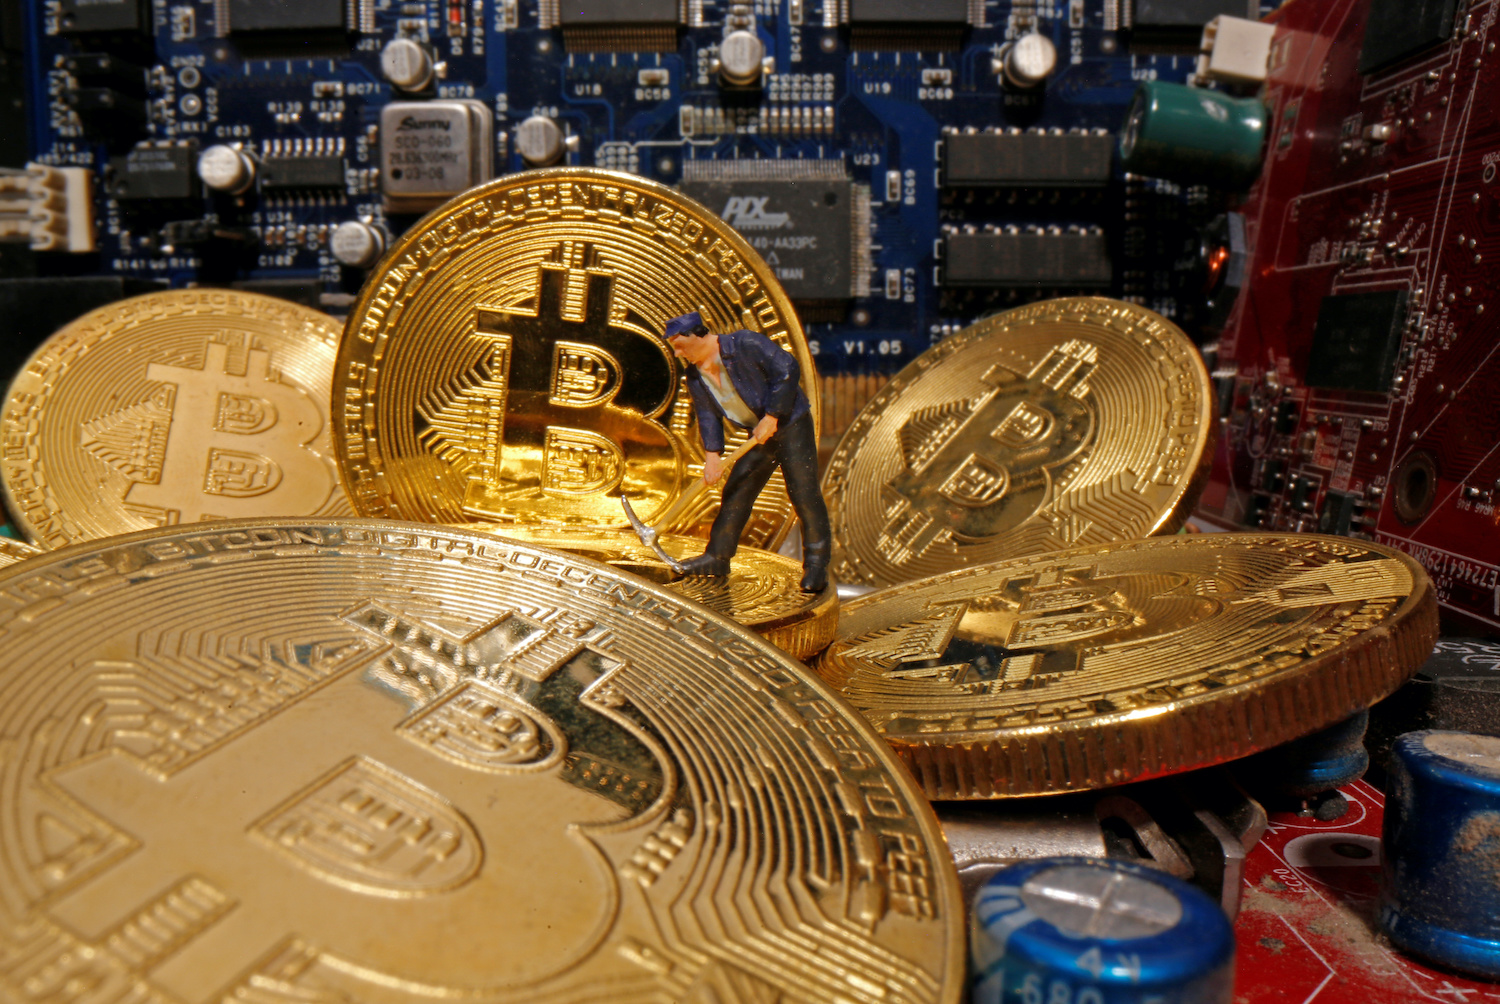 Bitcoin surge fails to materialise